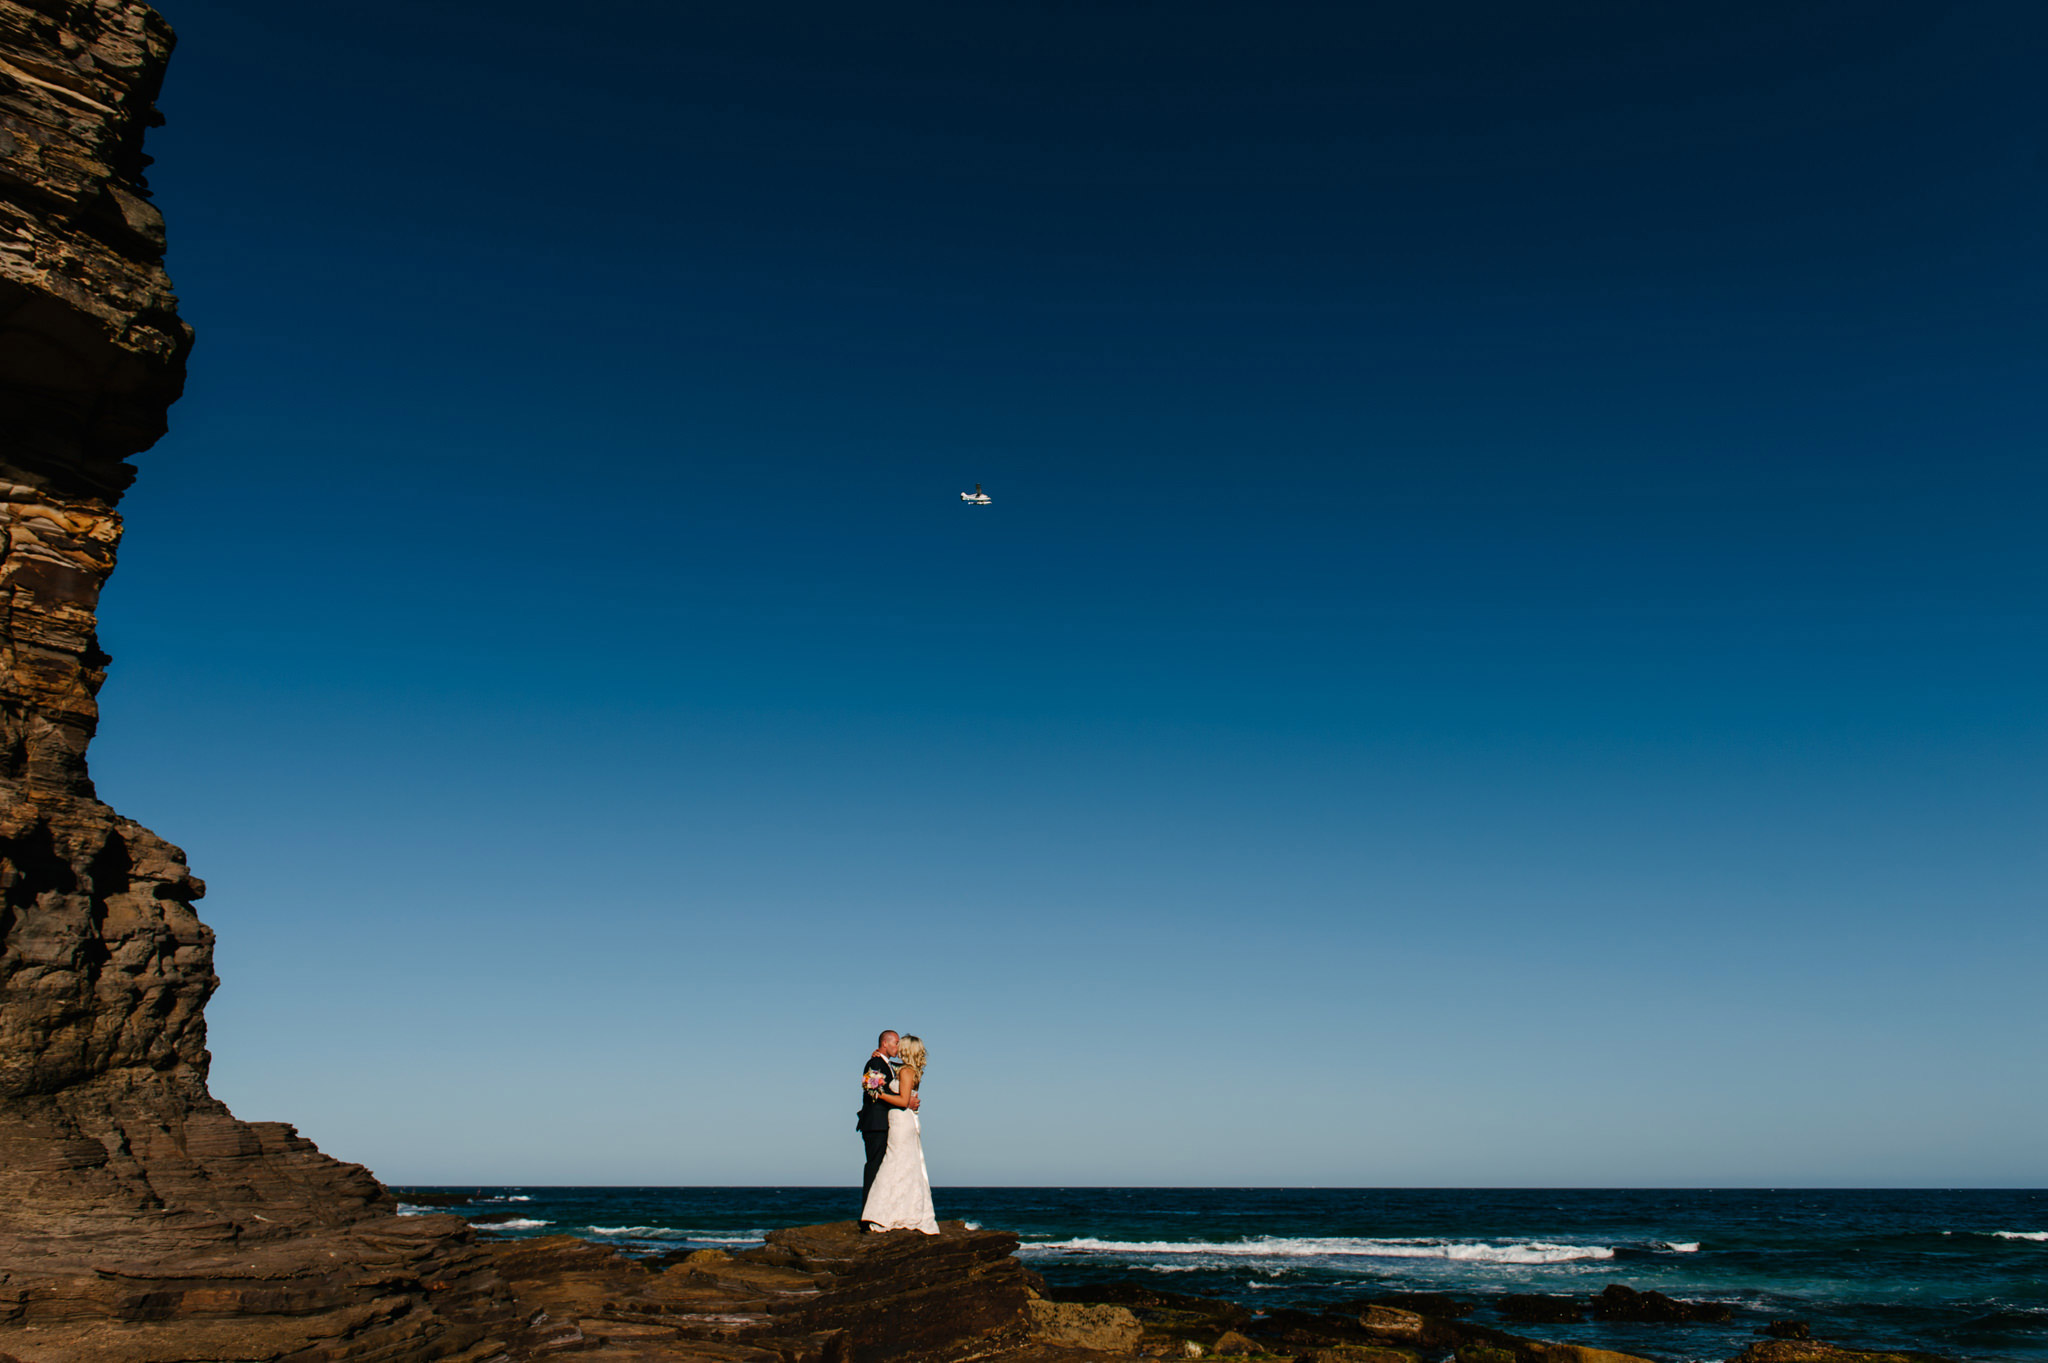 Wedding venues northern beaches sydney